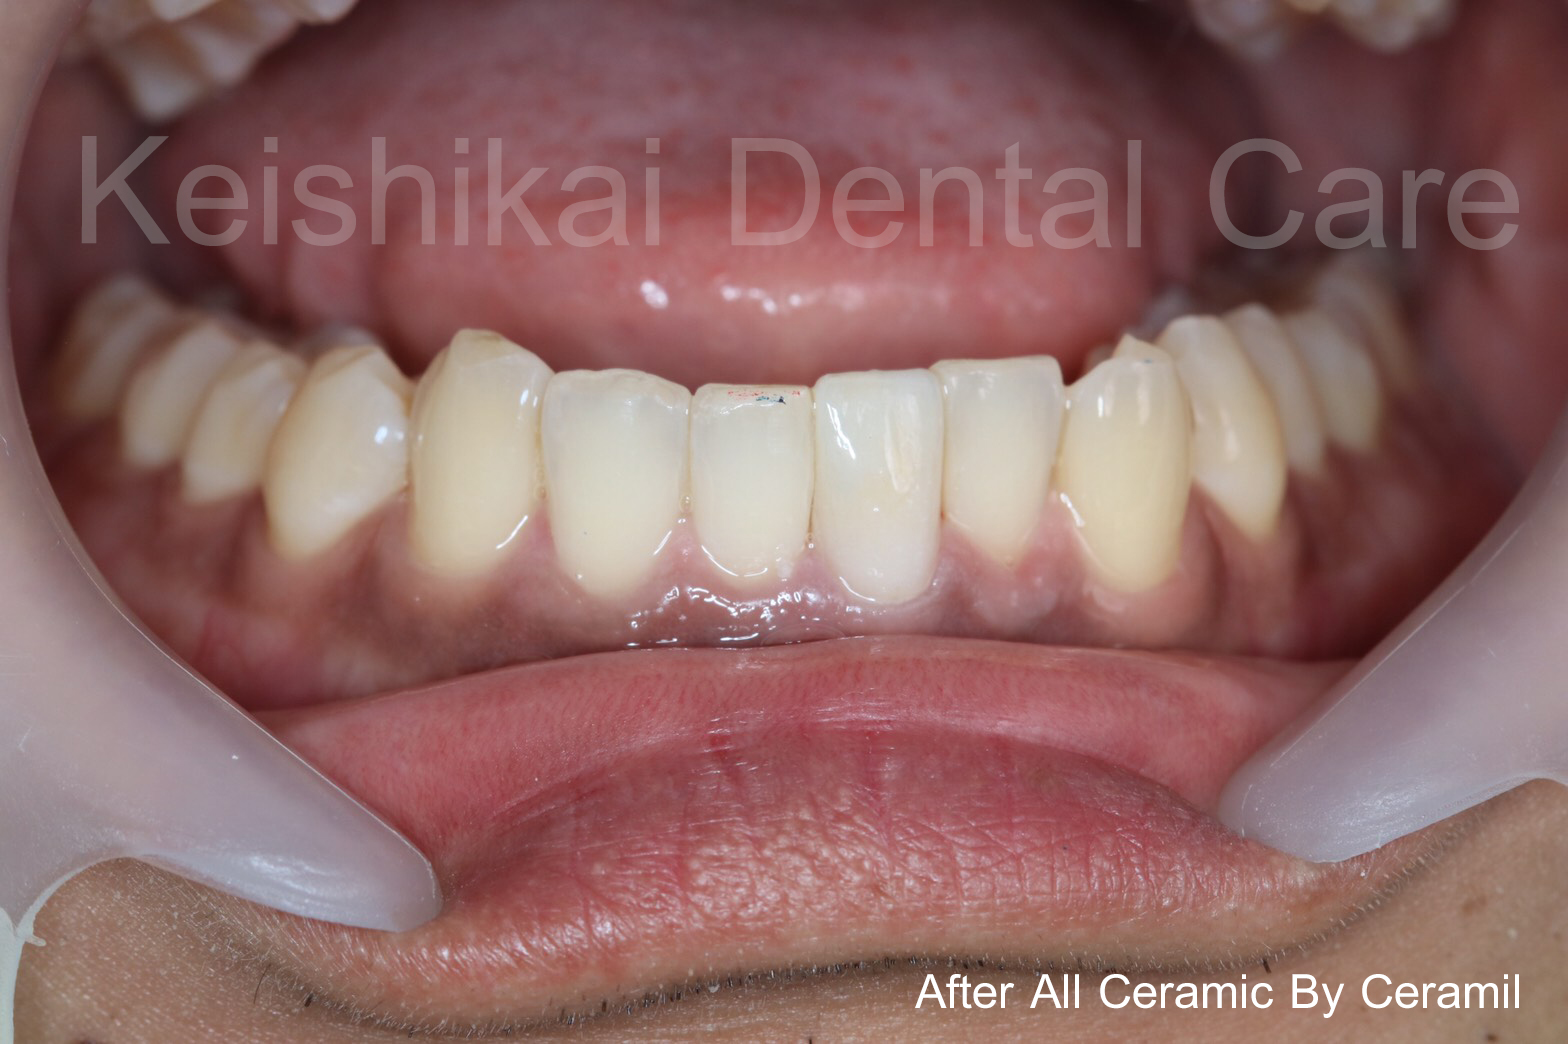 After1-All Ceramic By Ceramil-keishikaidentalclinic